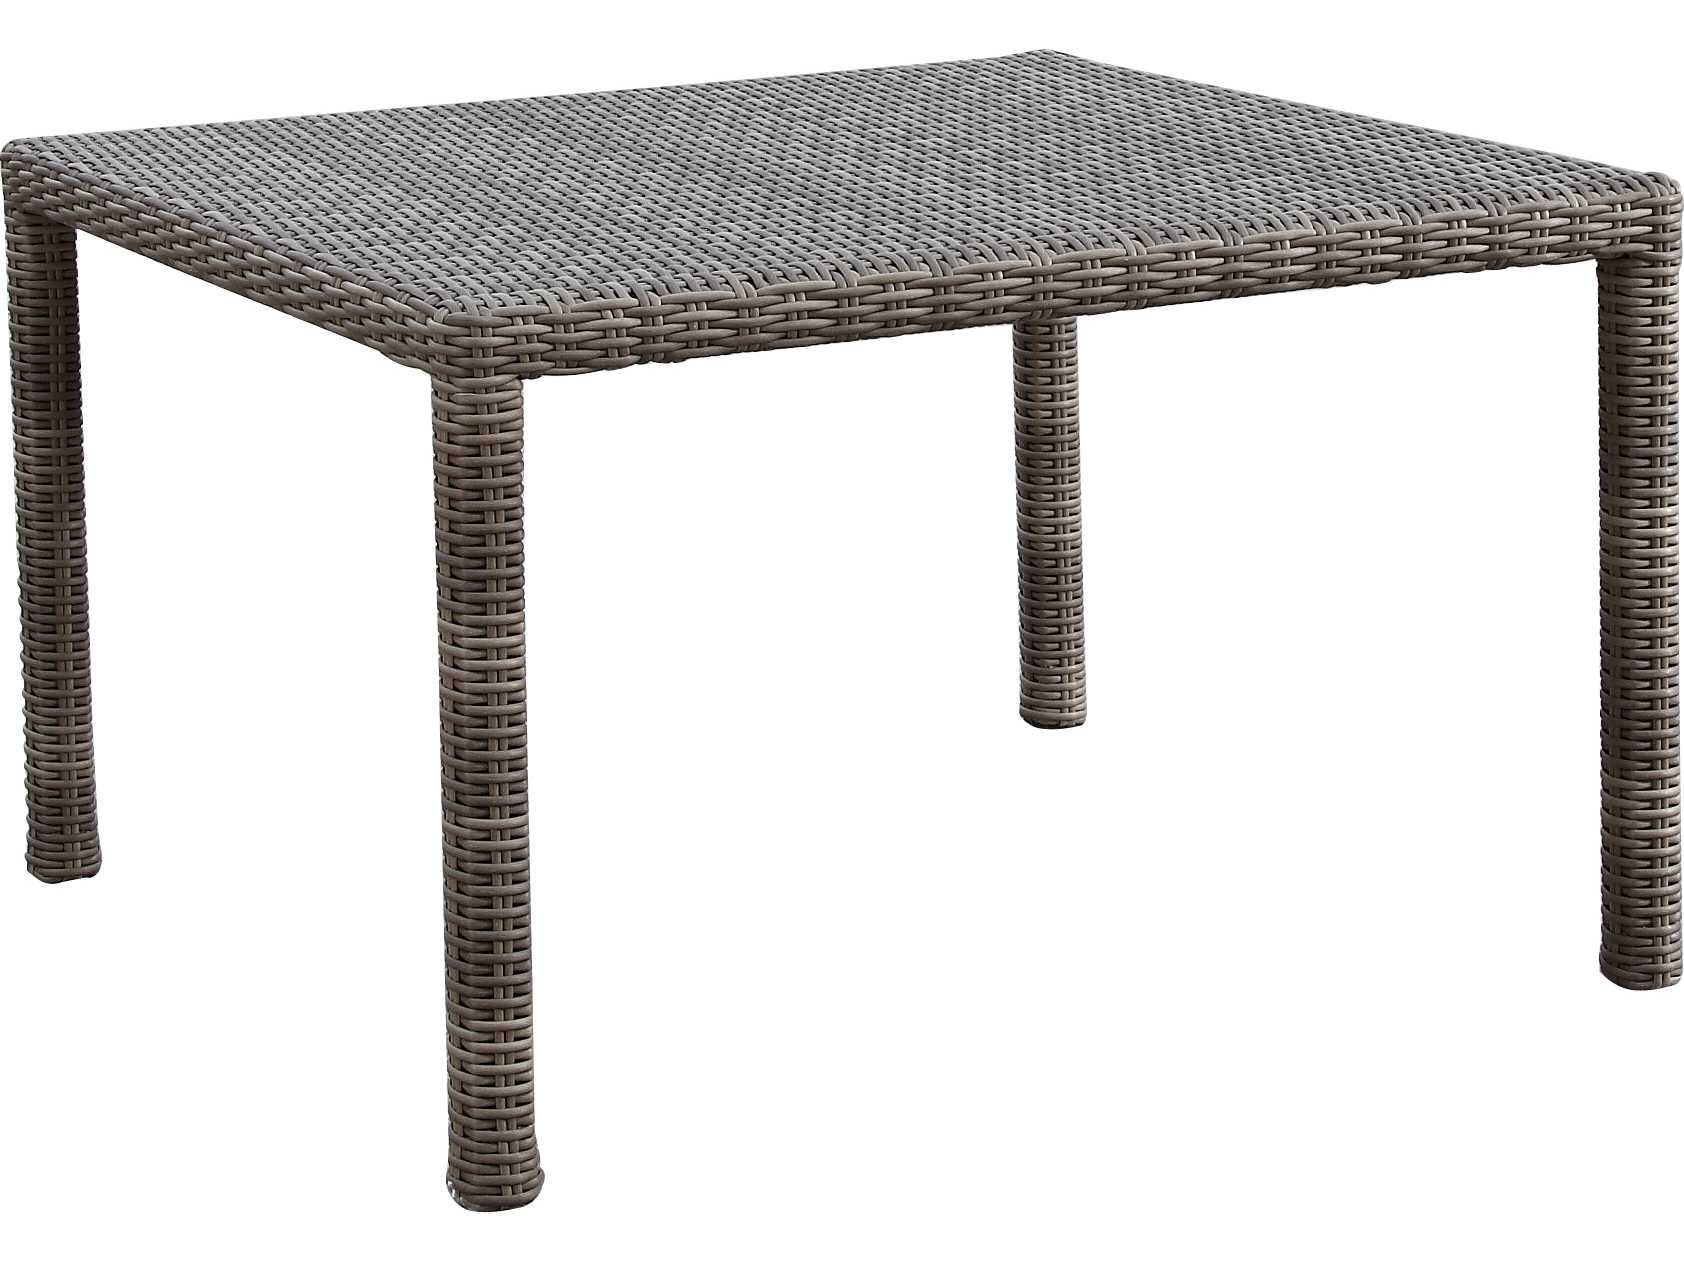 Sunset West Coronado Wicker 48 Square Dining Table 2101 T48